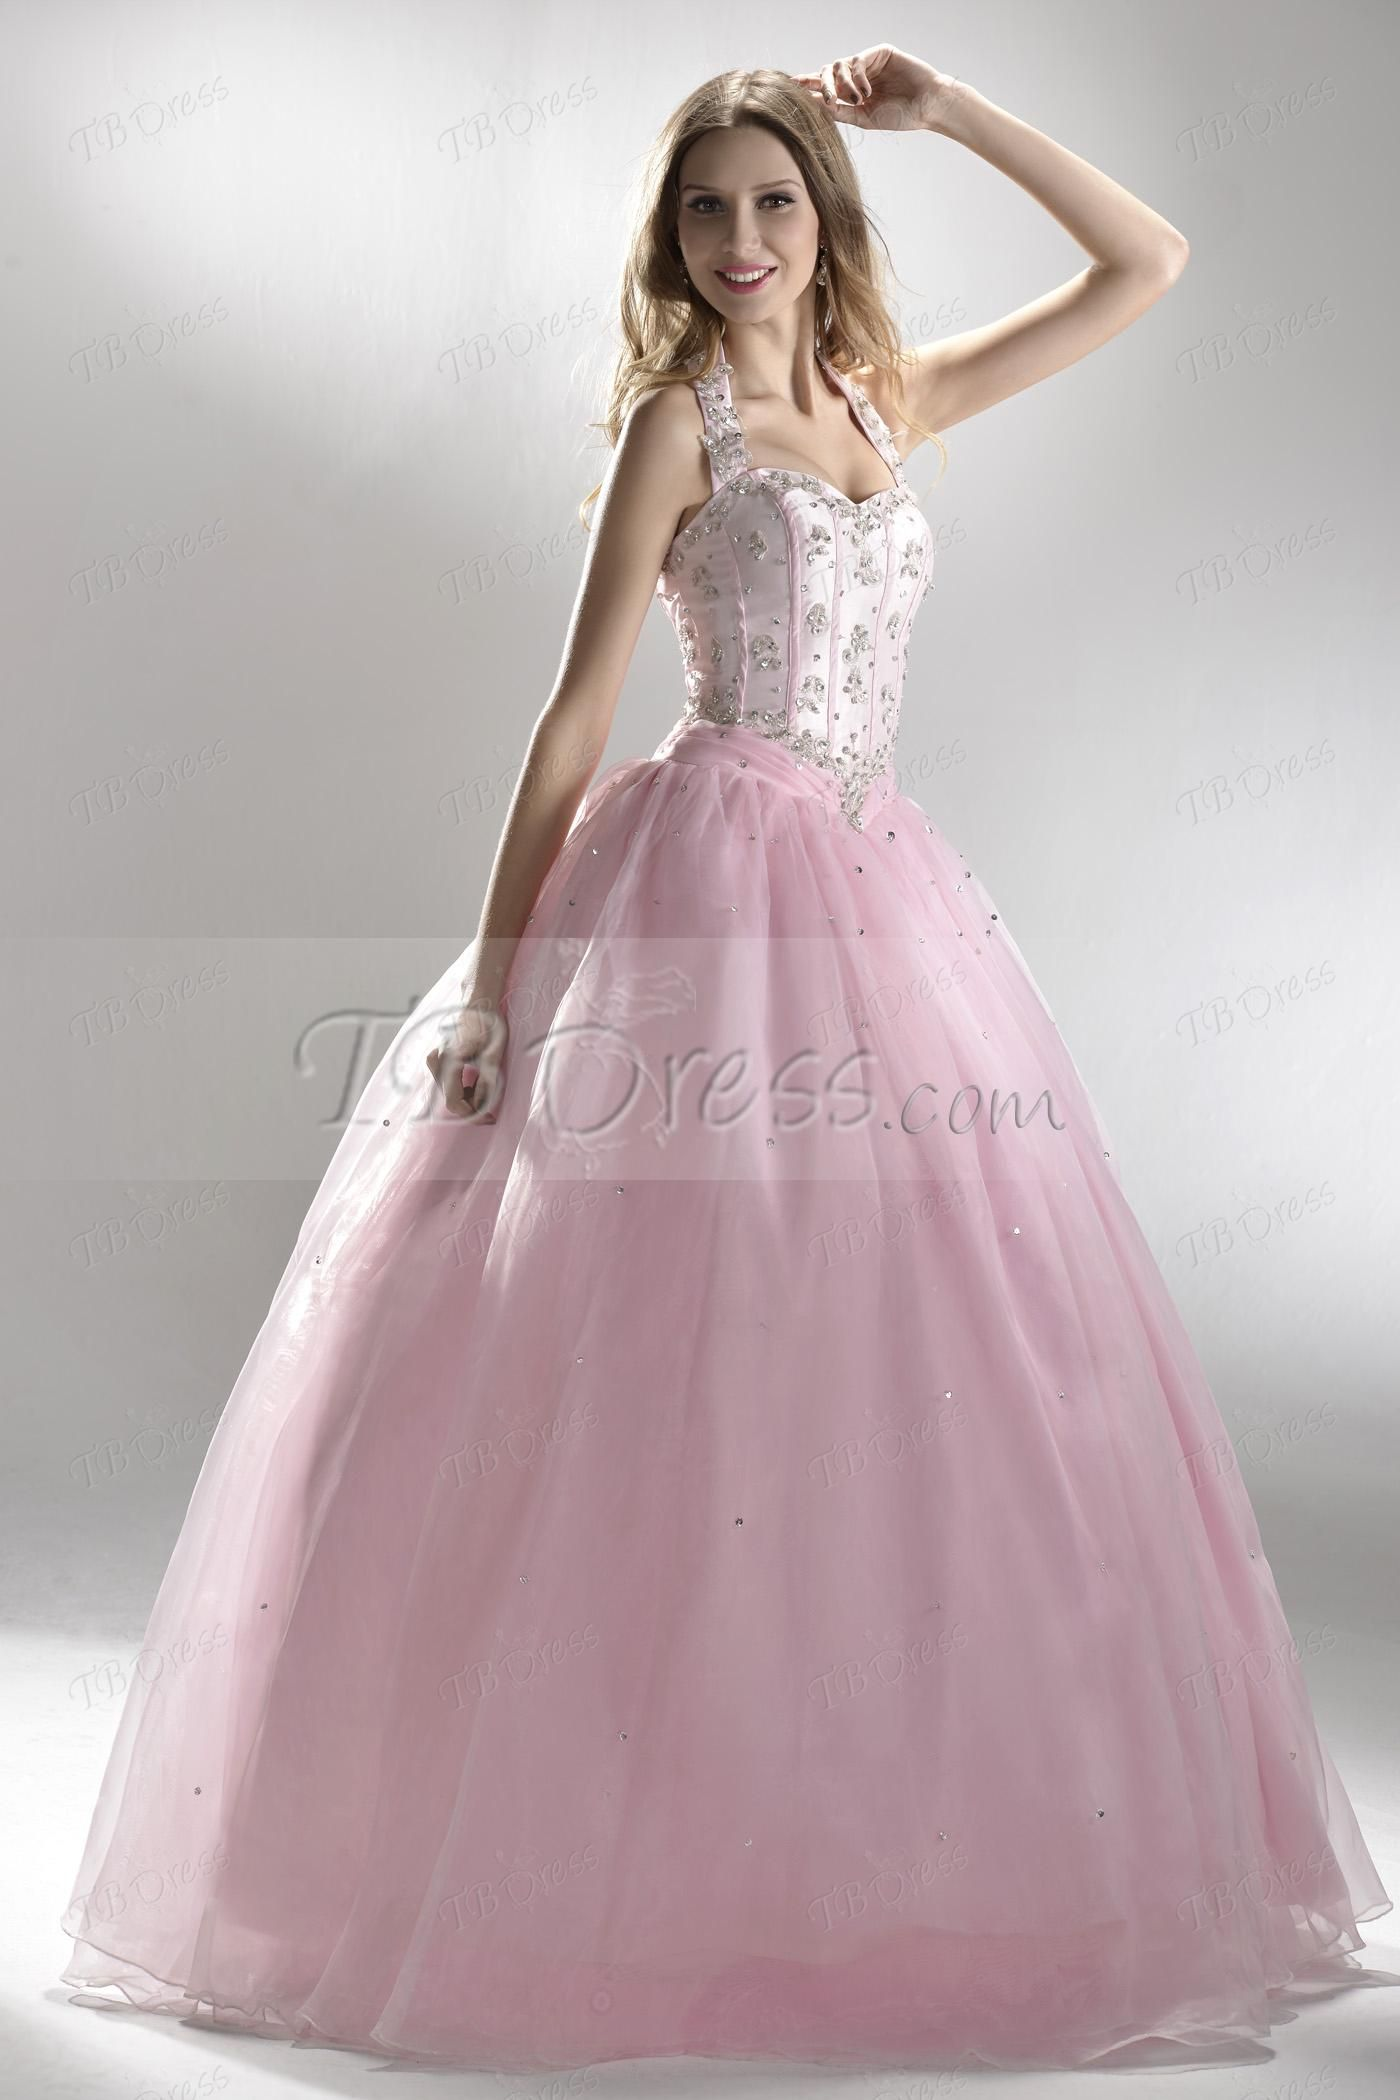 Luxurious Halter Sweetheart Appliques Long Ball Gown/Quinceanera Dress